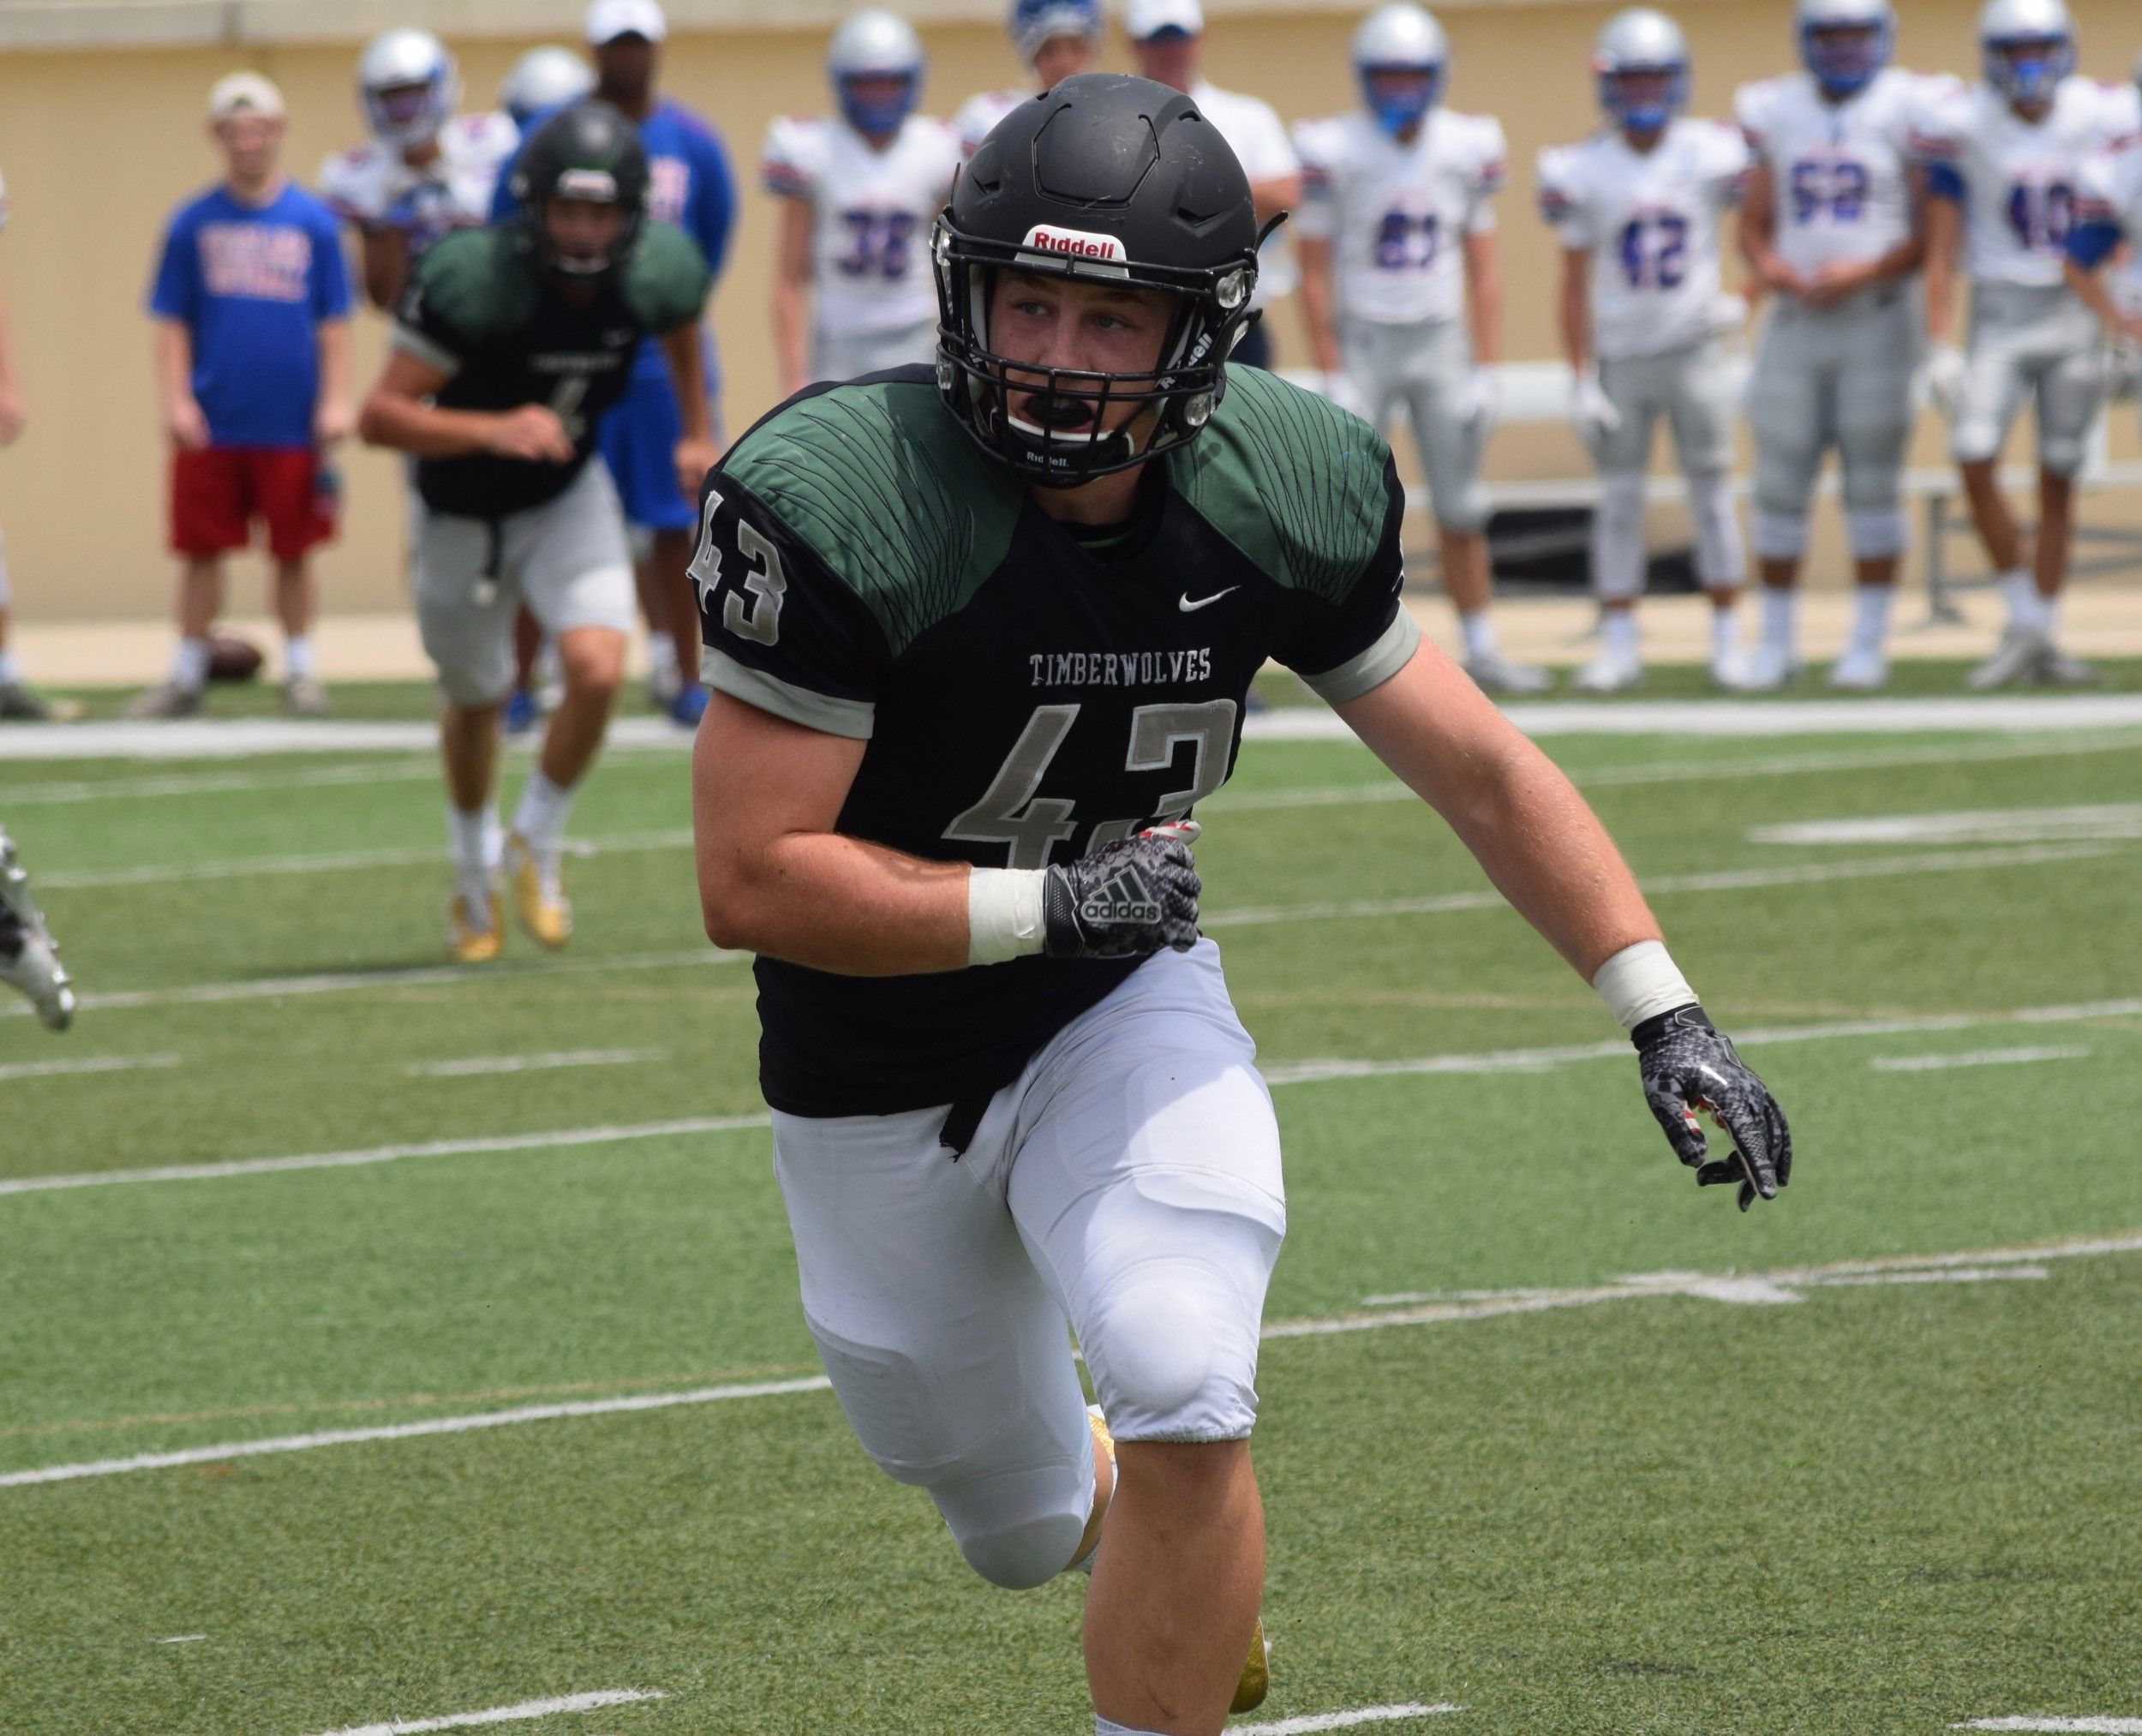 Keegan Nichols and Cedar Park lost to Waco Midway in their opener on Friday. But the first game is not indicative of how the season will play out.